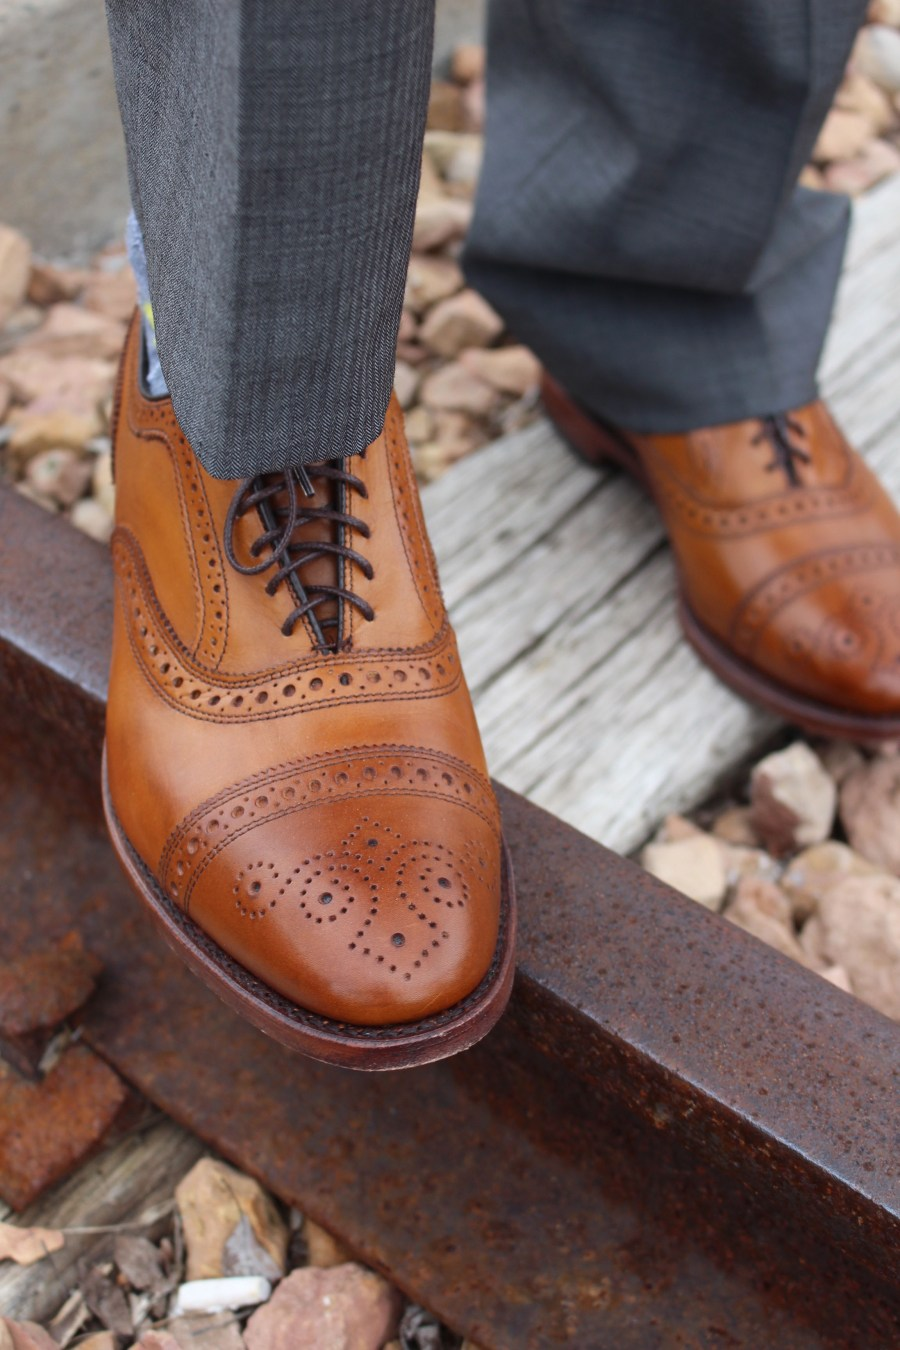 allen-edmonds-strands-walnut Wedding Guest Outfit Idea for Men, men's fashion, dressy wedding, Treats and Trends